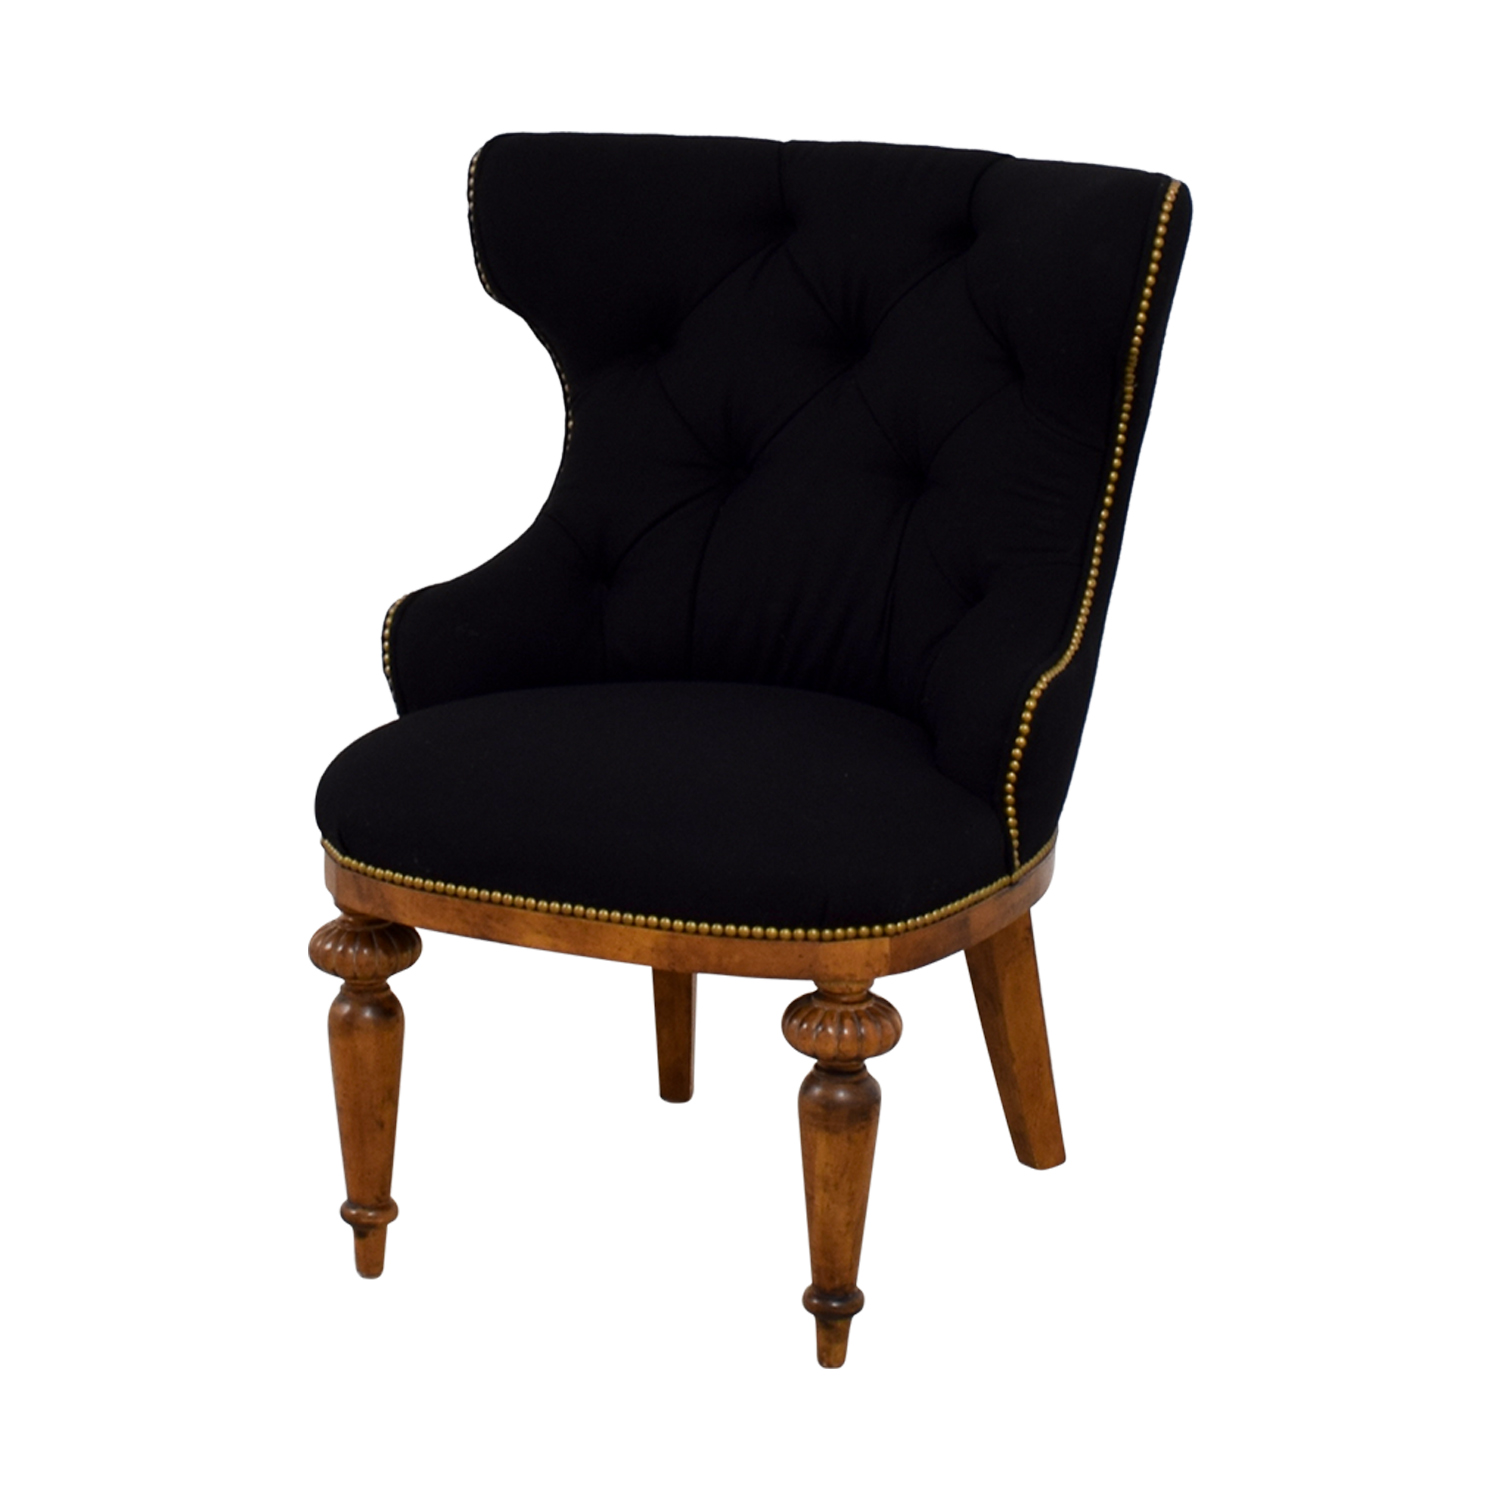 Furniture Masters Furniture Masters Black Tufted Nailhead Accent Chair discount